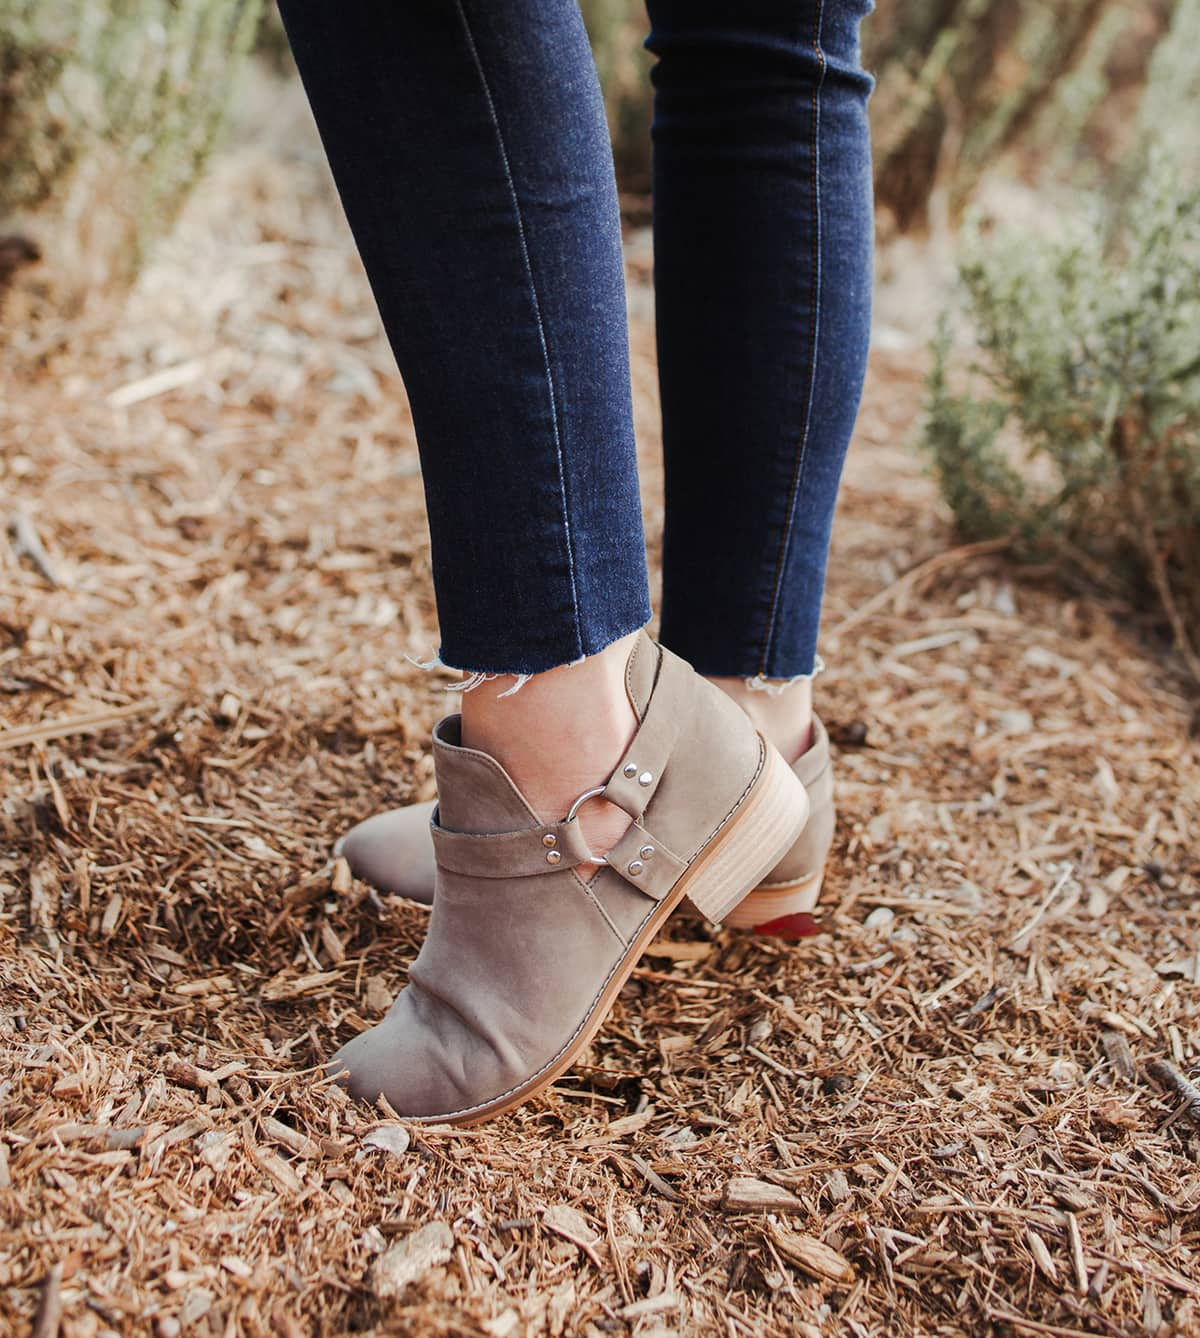 nordstrom anniversary sale best women's shoes